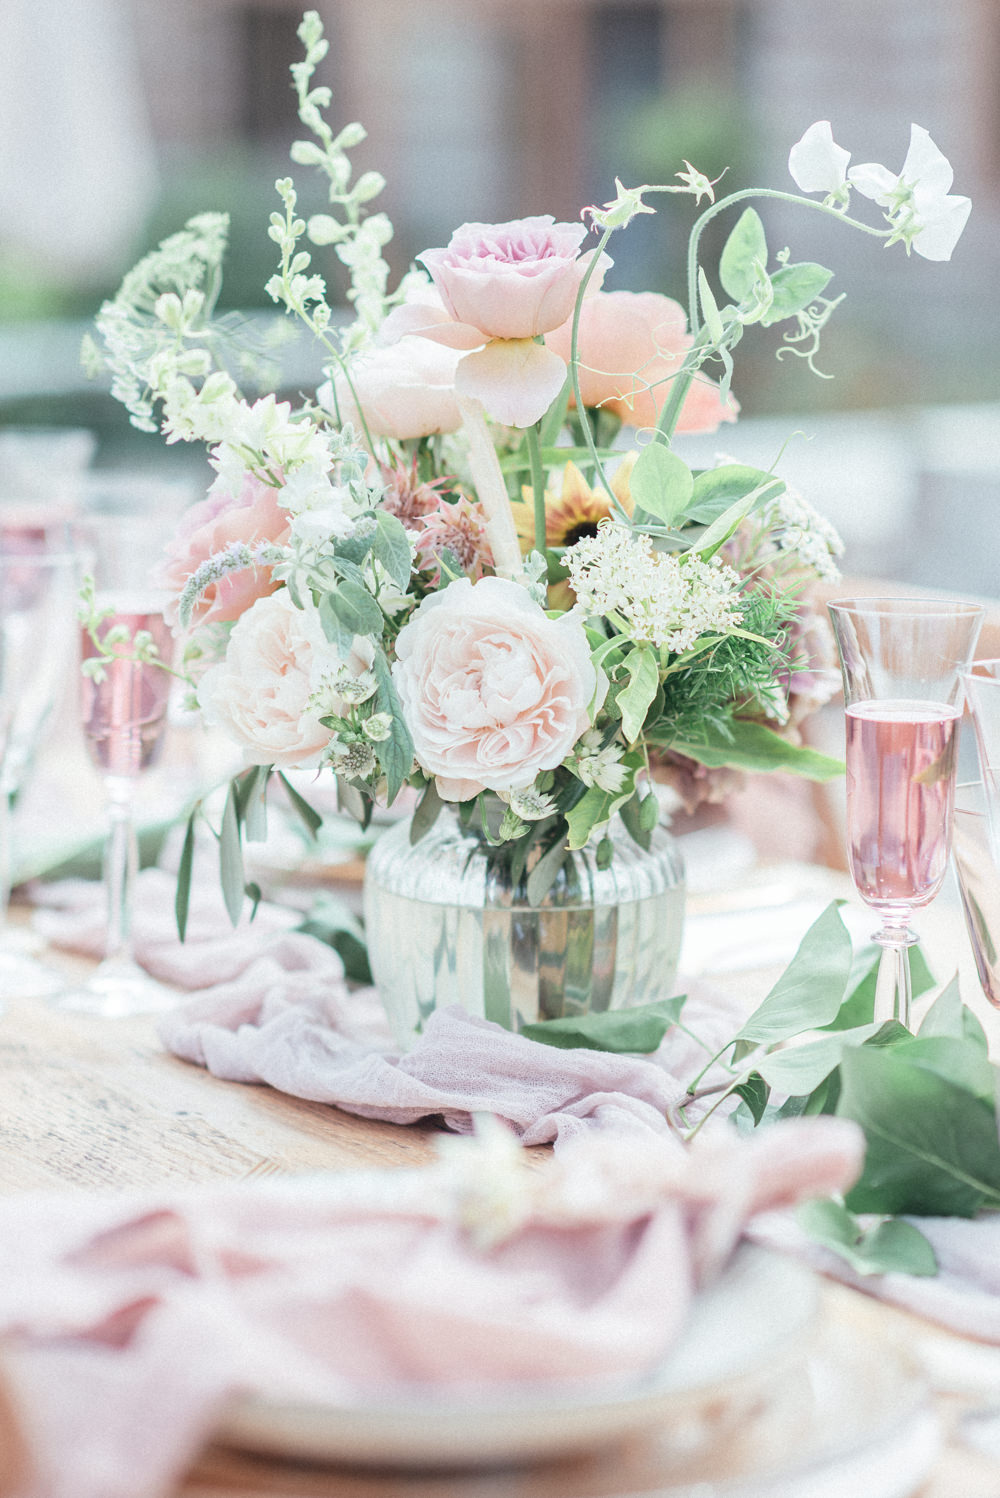 UK Destination Wedding Hannah McClune Photography Table Flowers Centrepiece Pink Rose